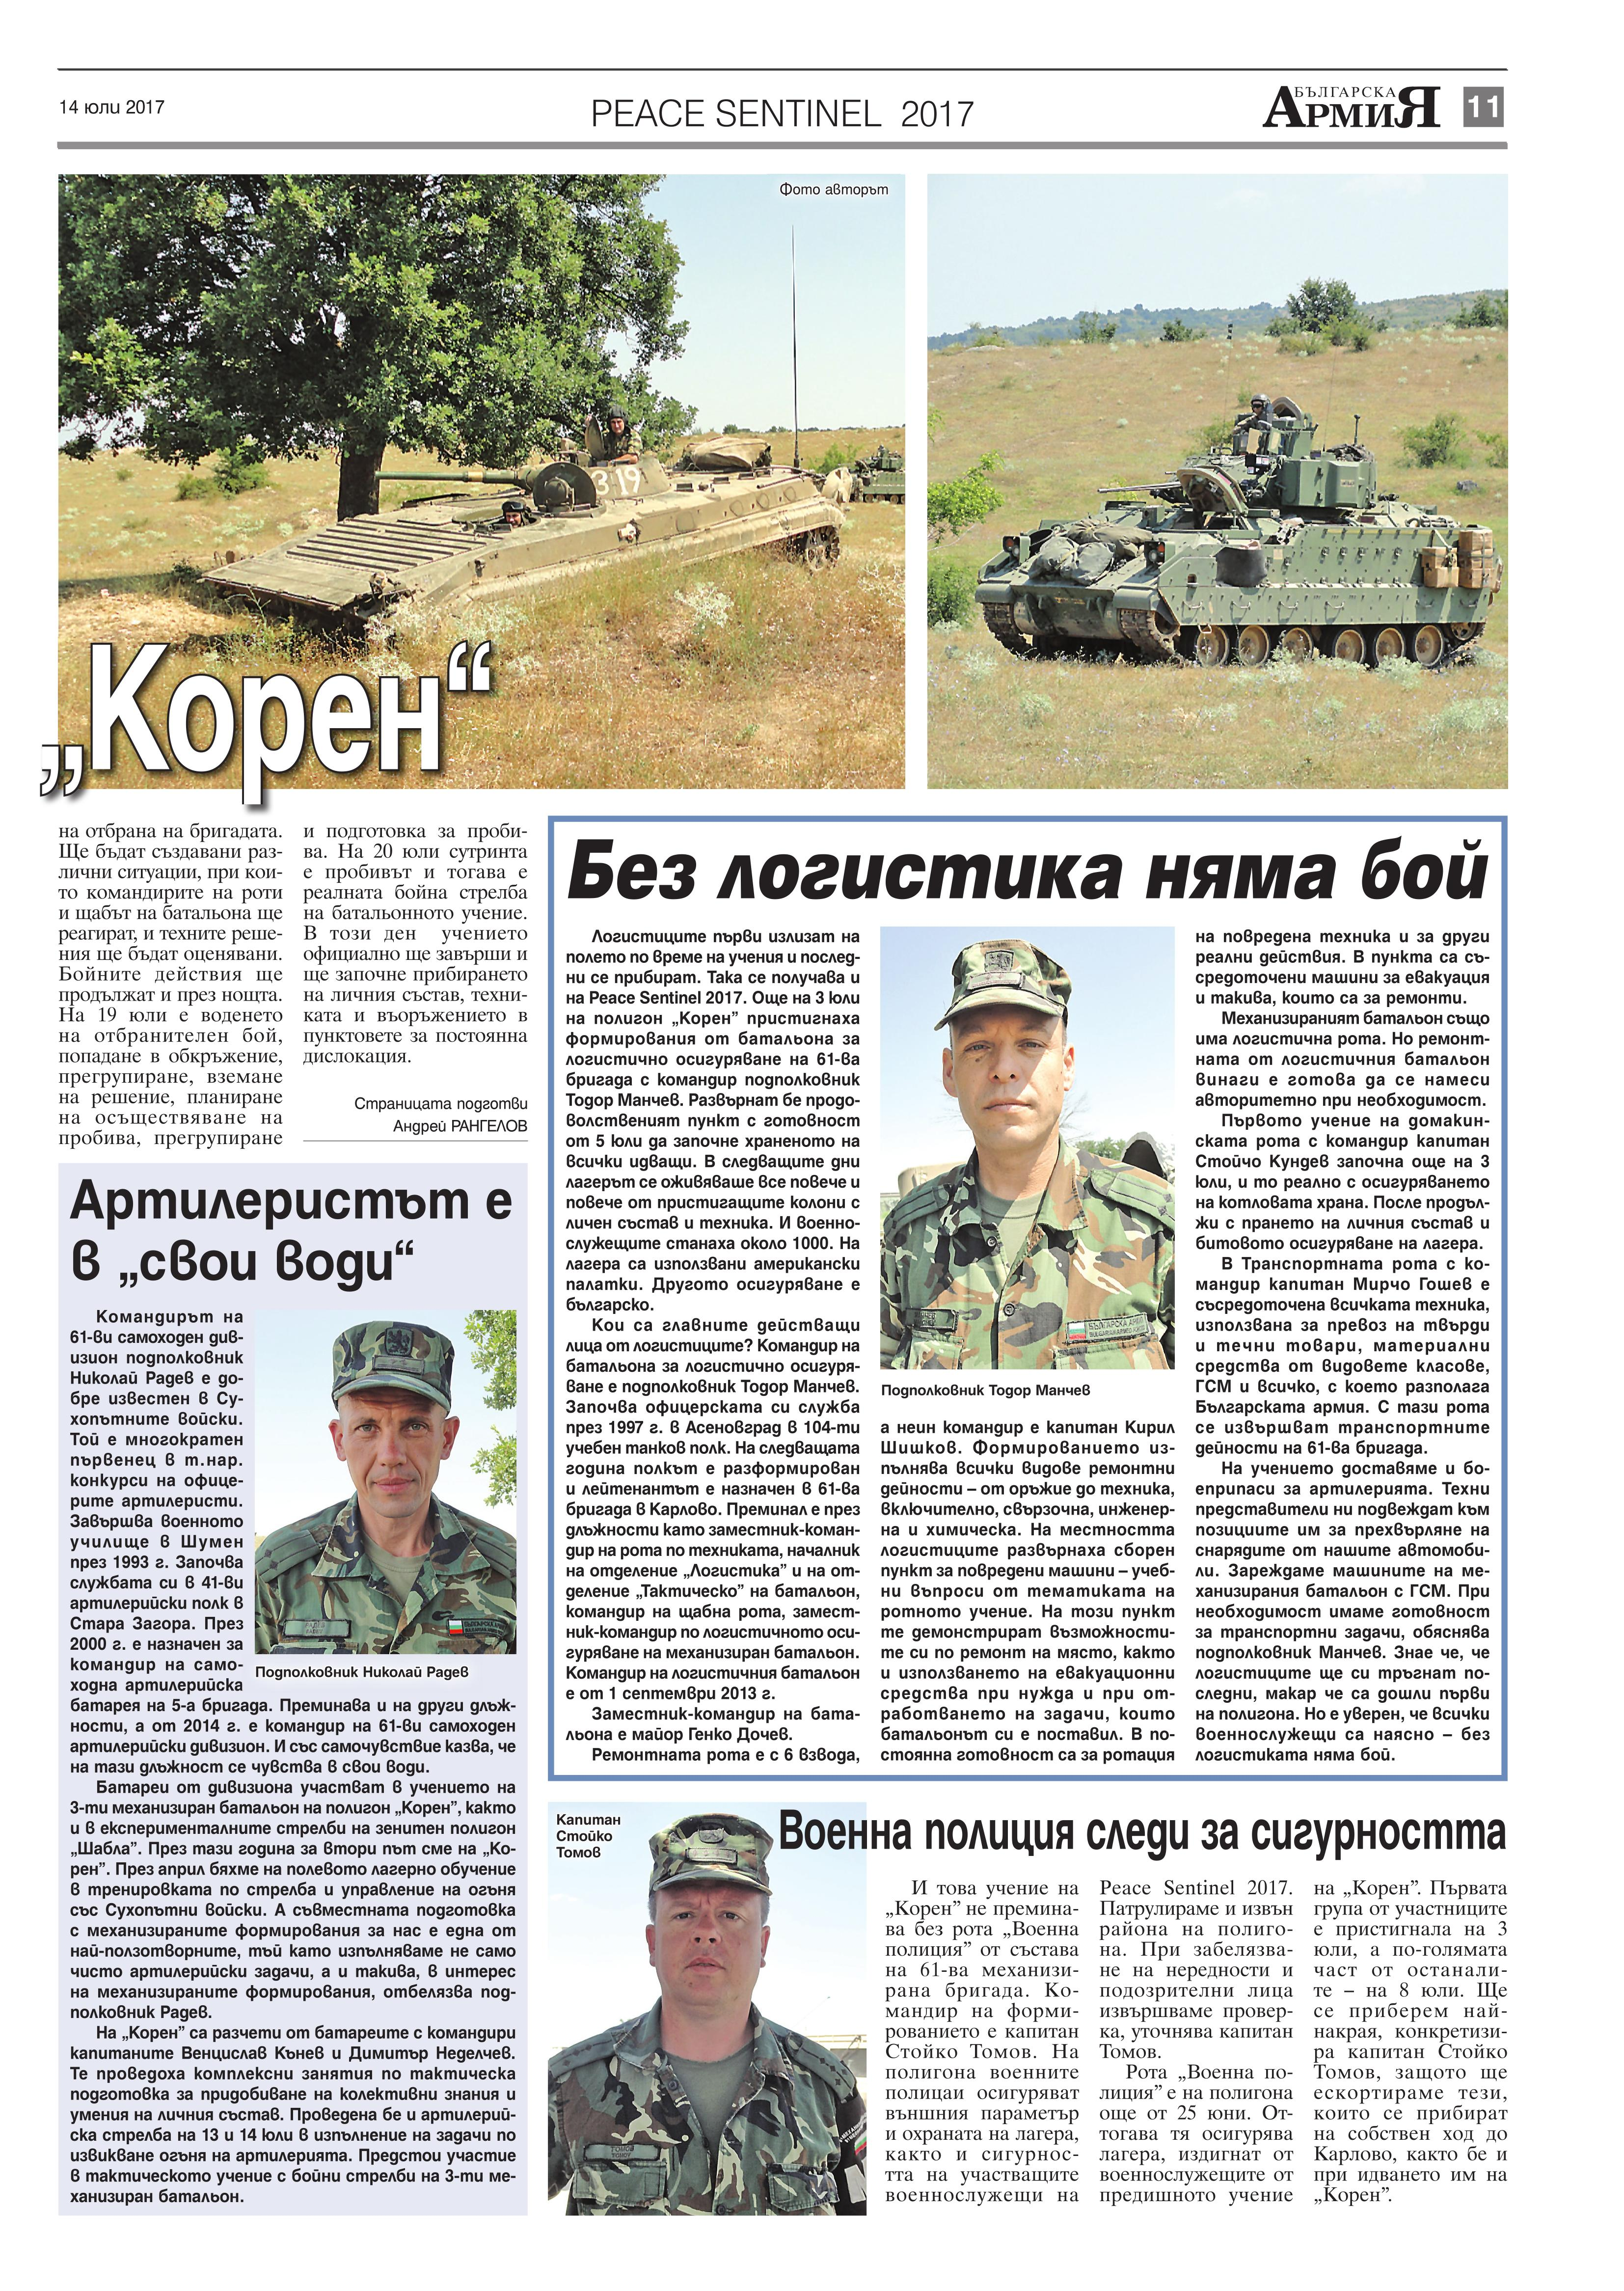 http://armymedia.bg/wp-content/uploads/2015/06/11.page1_-25.jpg